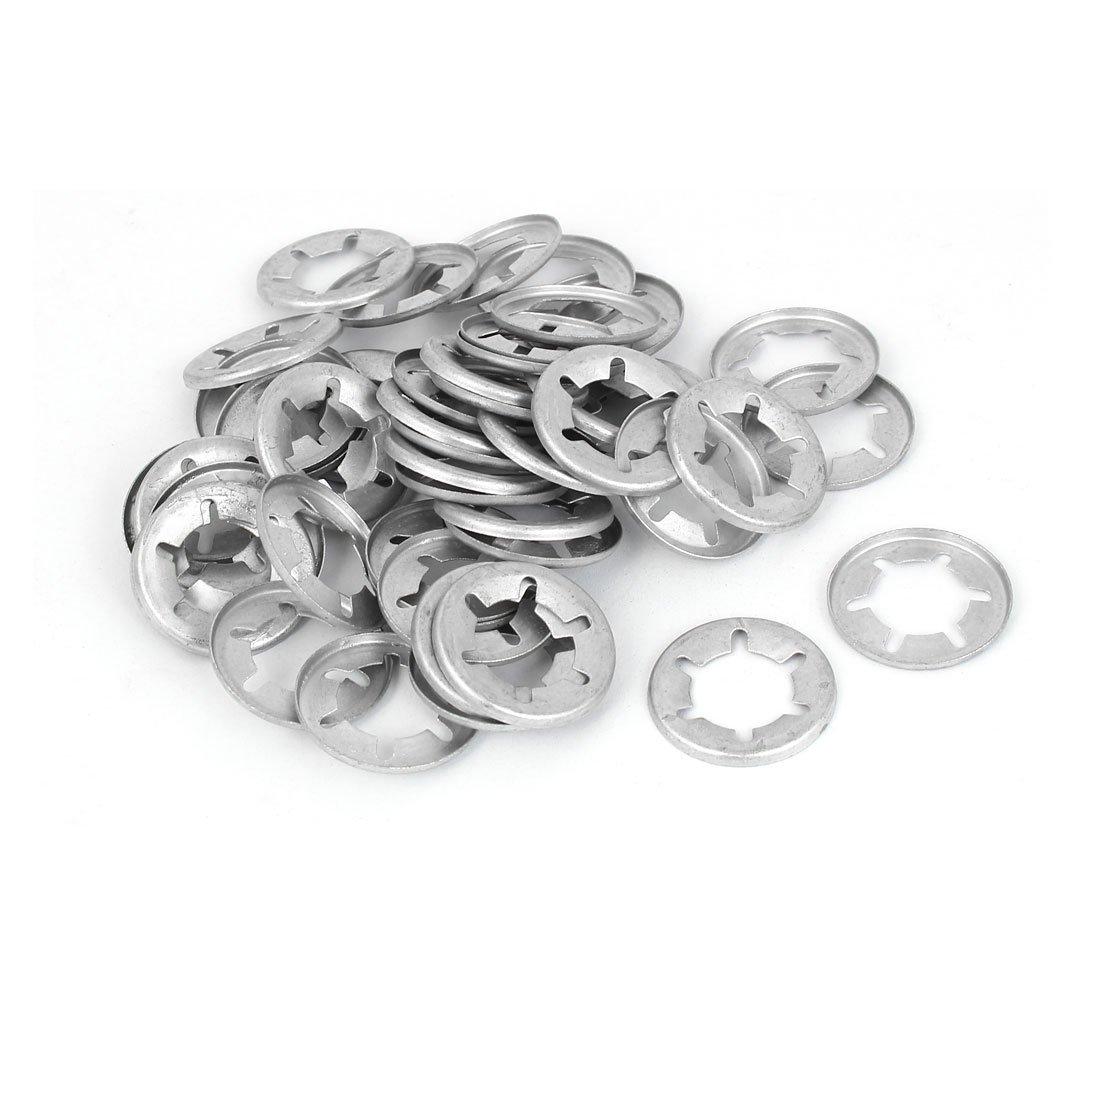 304 Stainless Steel Pack of 20 uxcell M16 Starlock Washer 15.3mm I.D 28mm O.D Internal Tooth Lock Washers Push On Locking Speed Clip